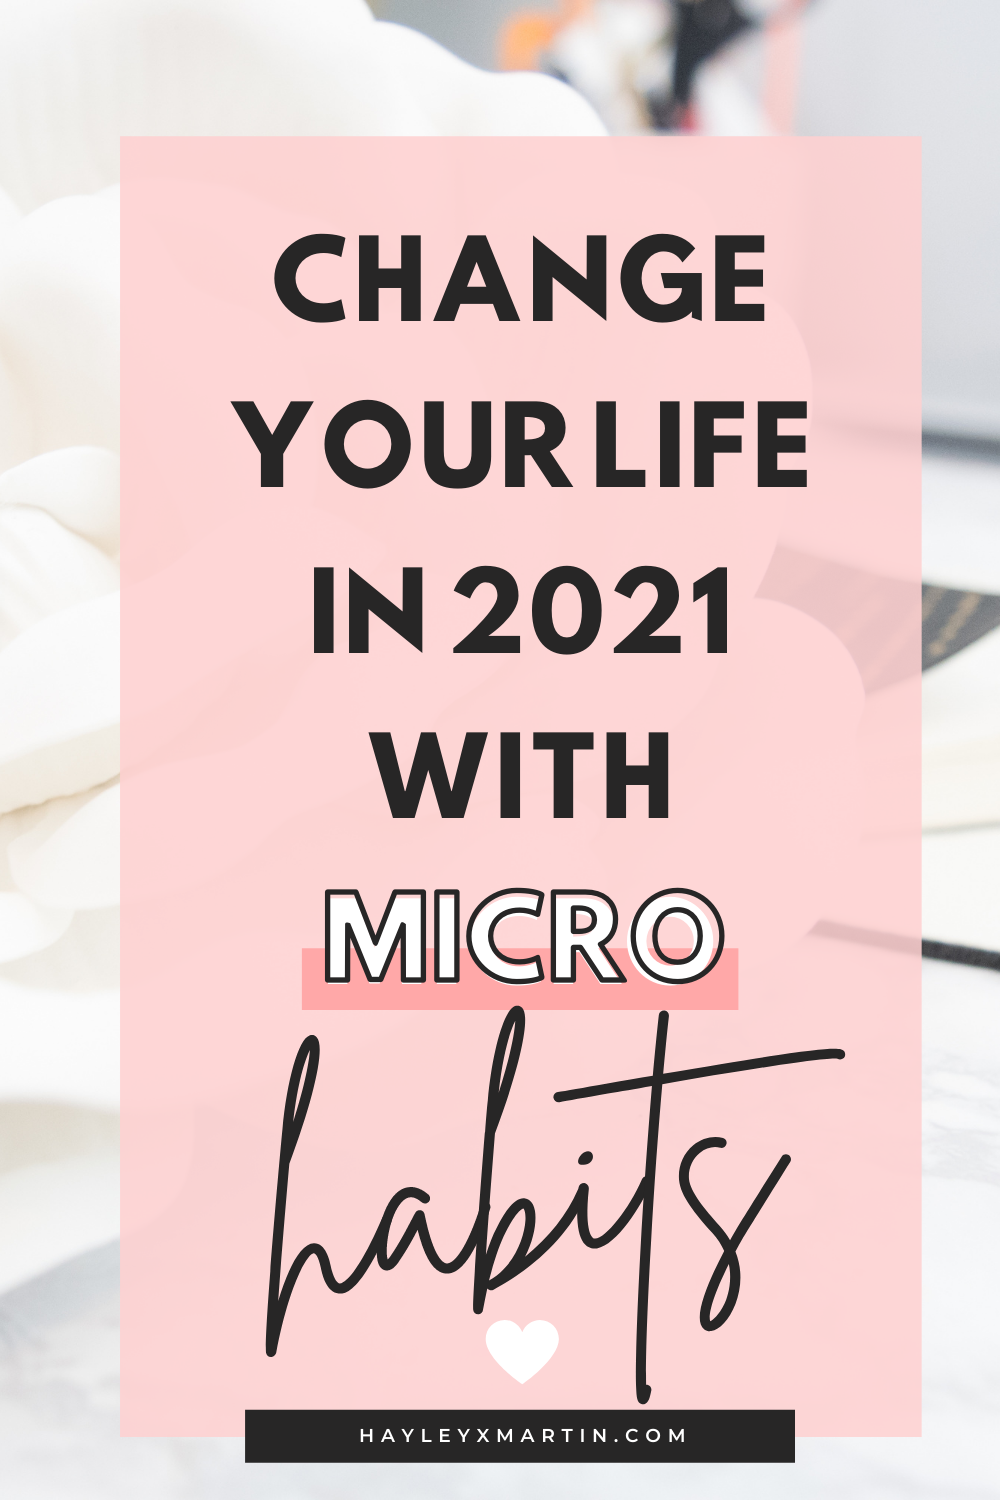 CHANGE YOUR LIFE IN 2021 WITH MICRO HABITS | HAYLEYXMARTIN